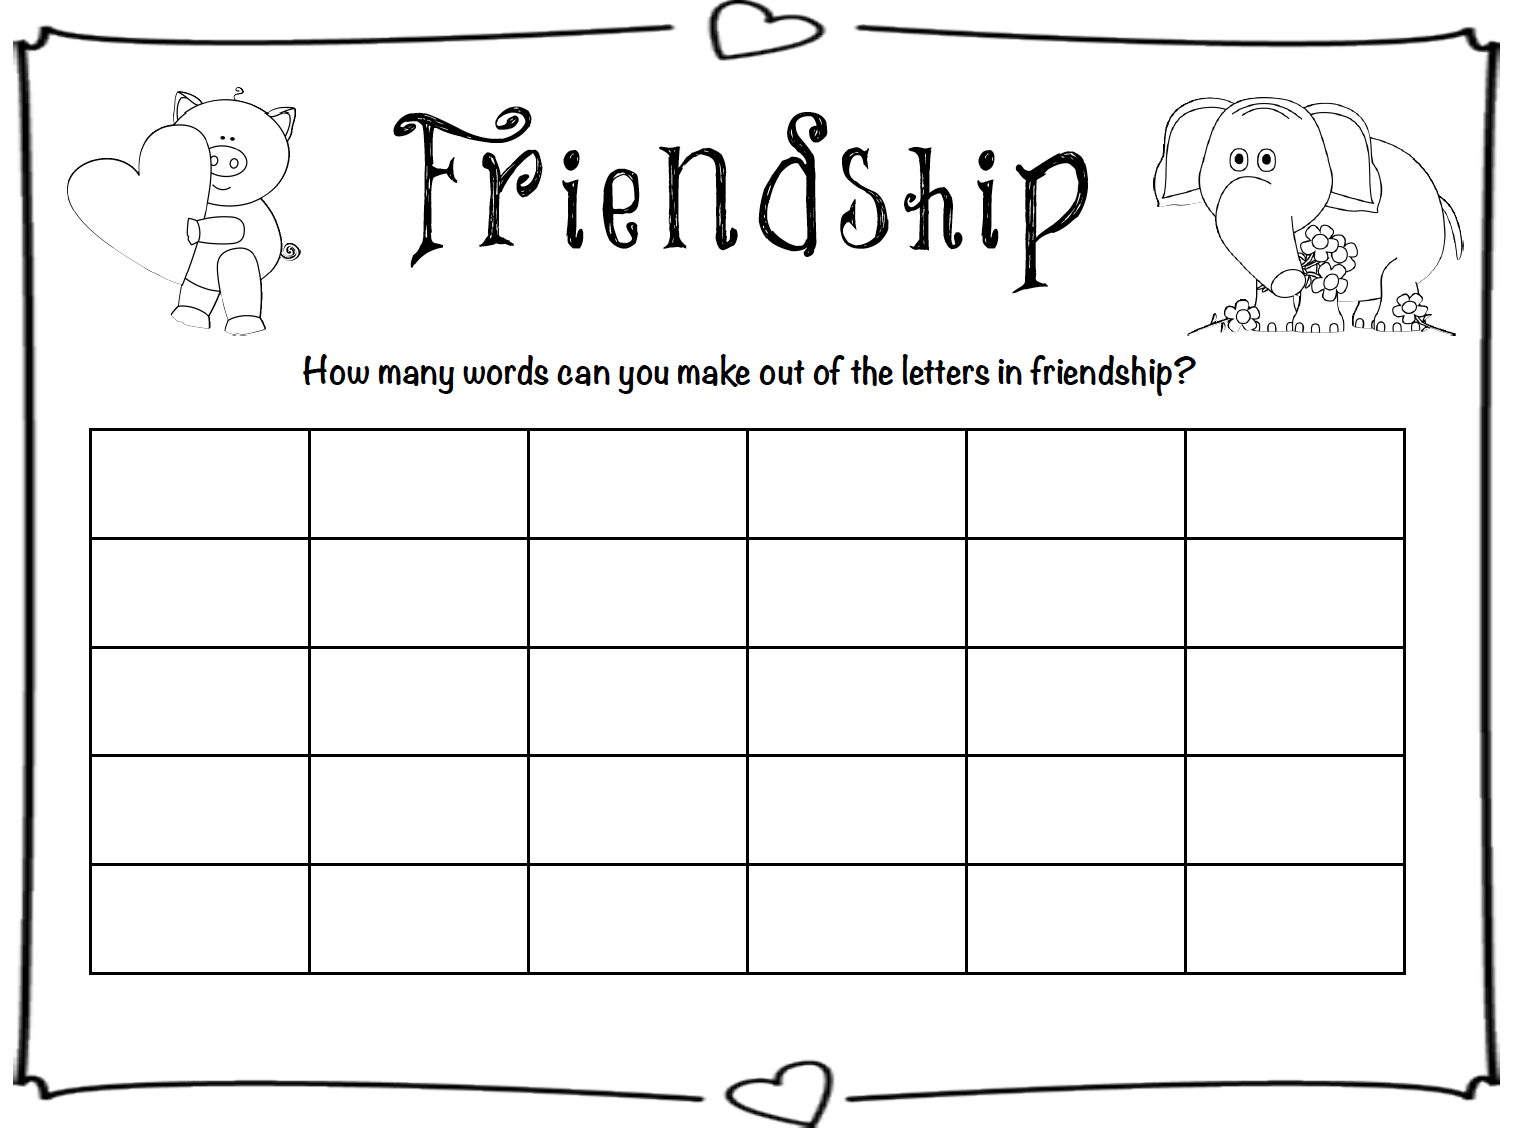 worksheet Friendship Worksheets friendship worksheets for kindergarten reading free worksheet phinixi com kindergarten